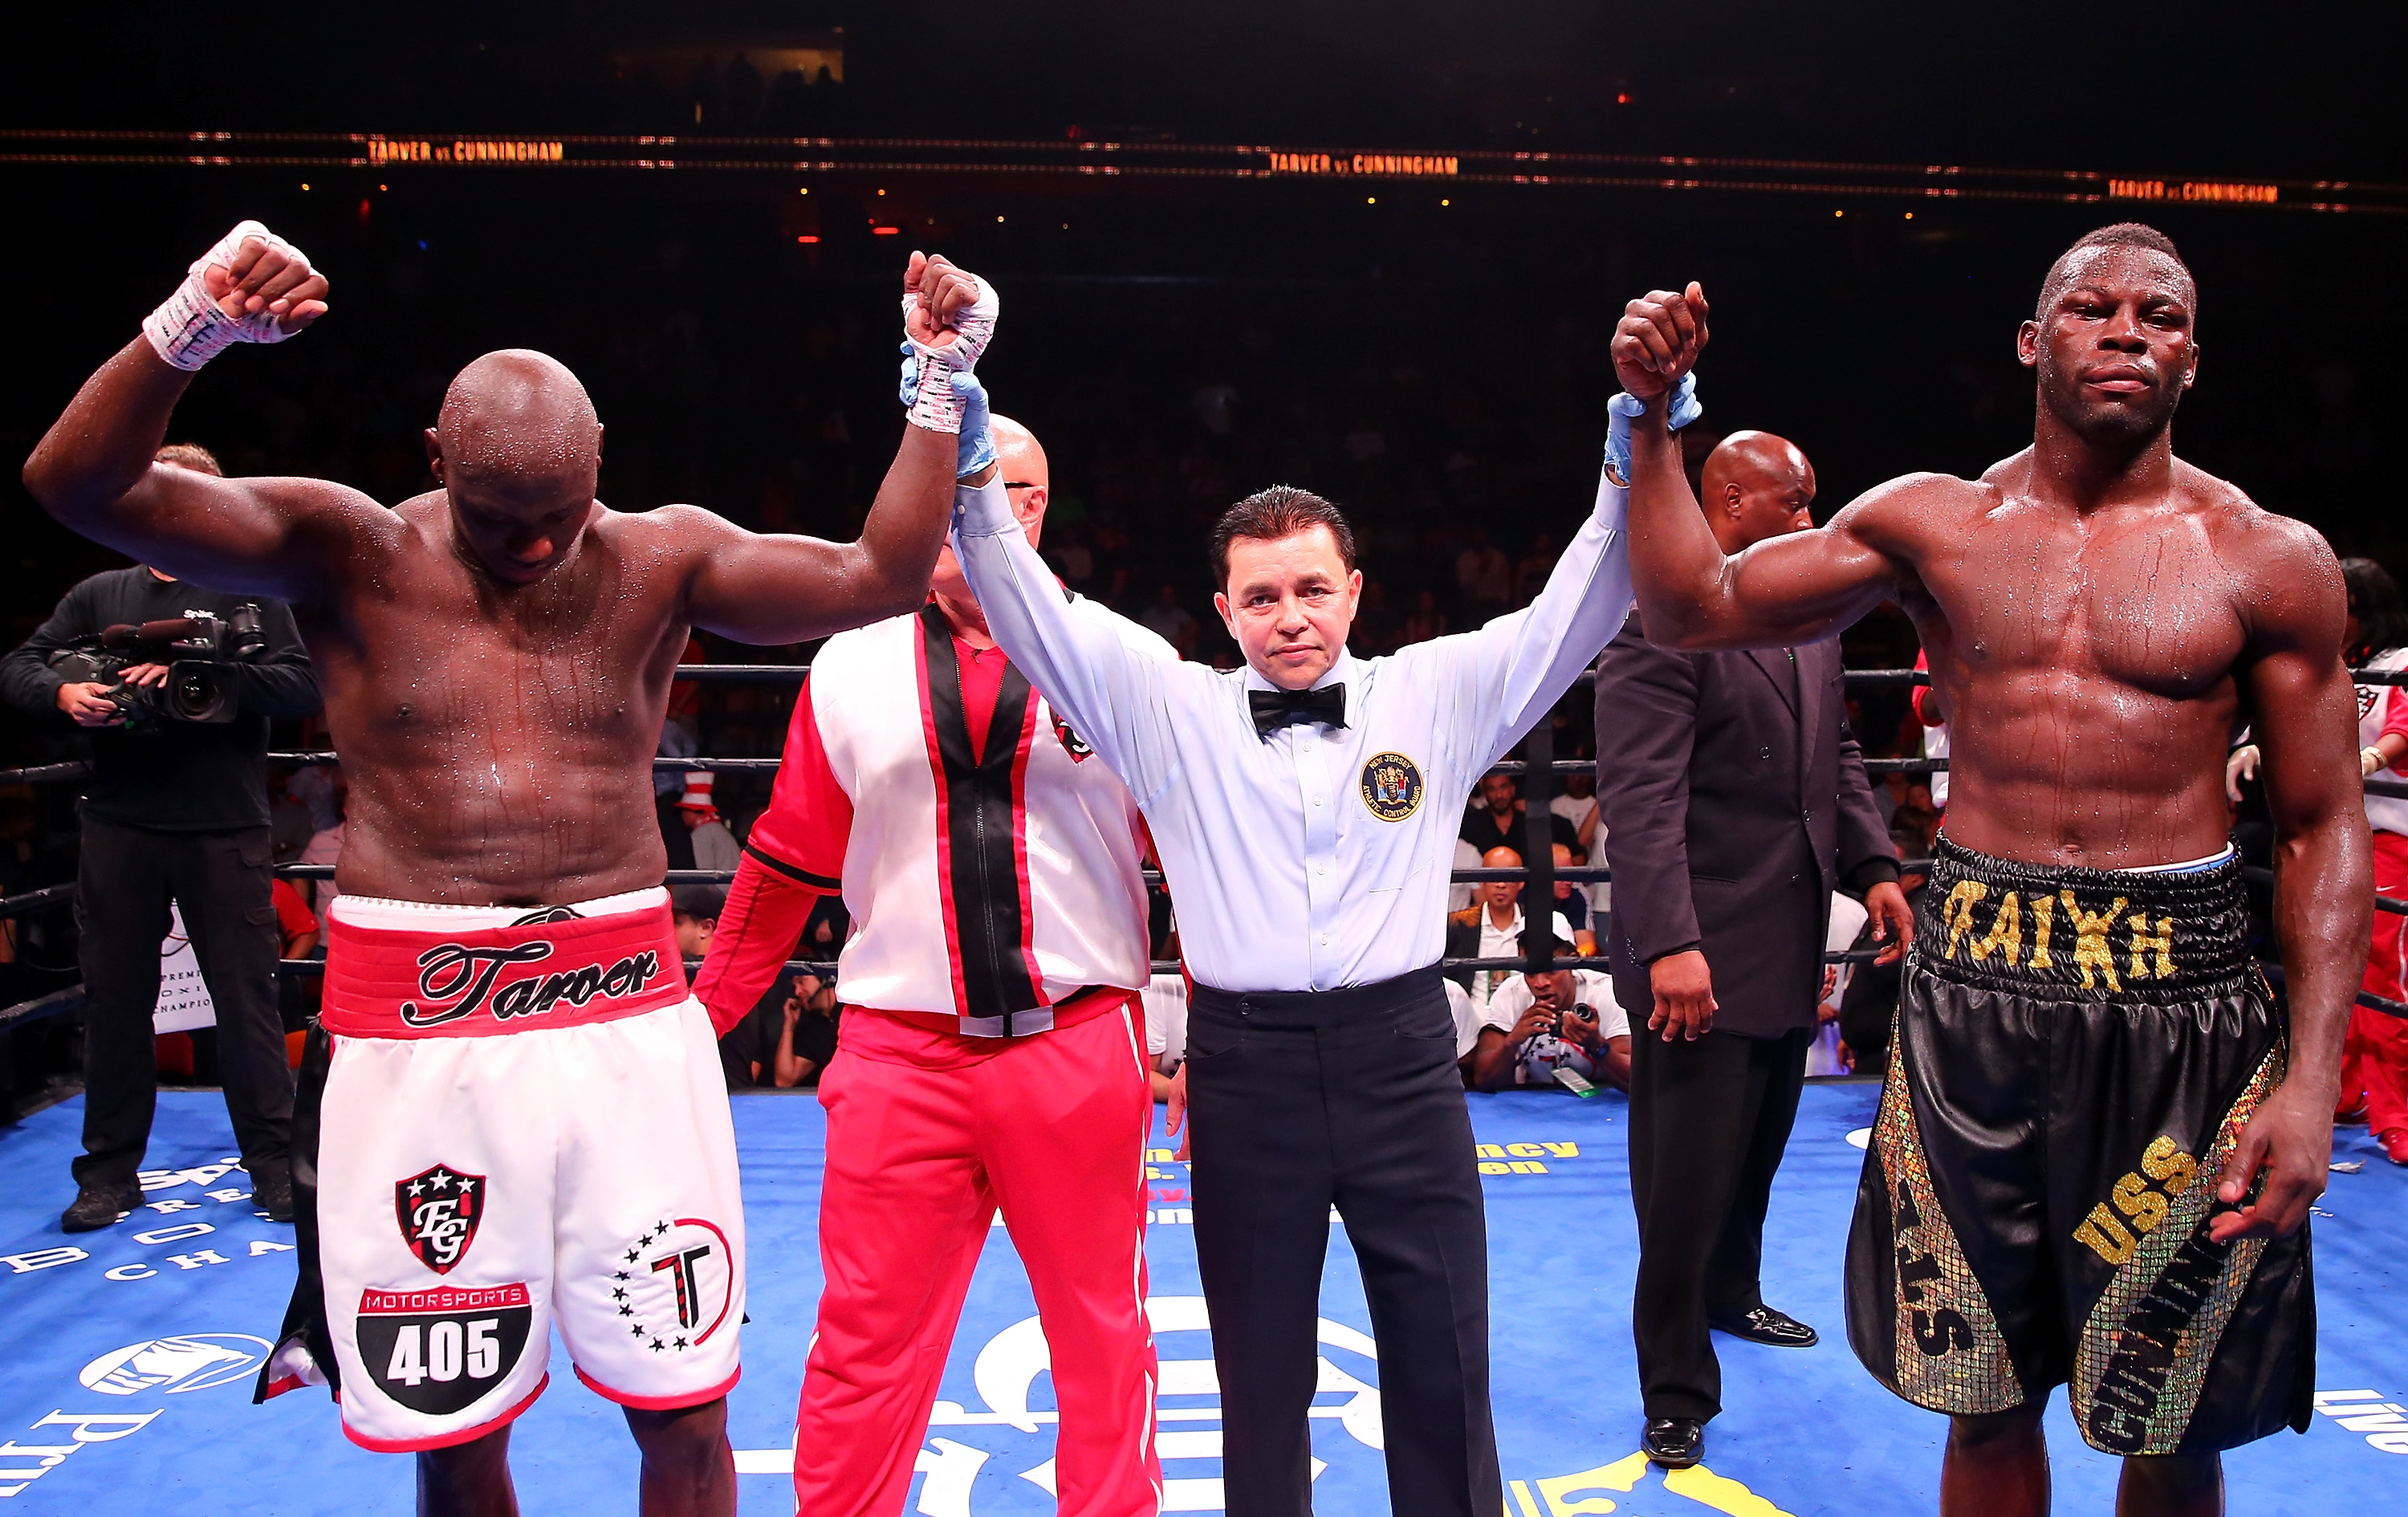 Antonio Tarver and Steve Cunningham fight to a draw after 12 rounds of heavyweight boxing. (Getty)